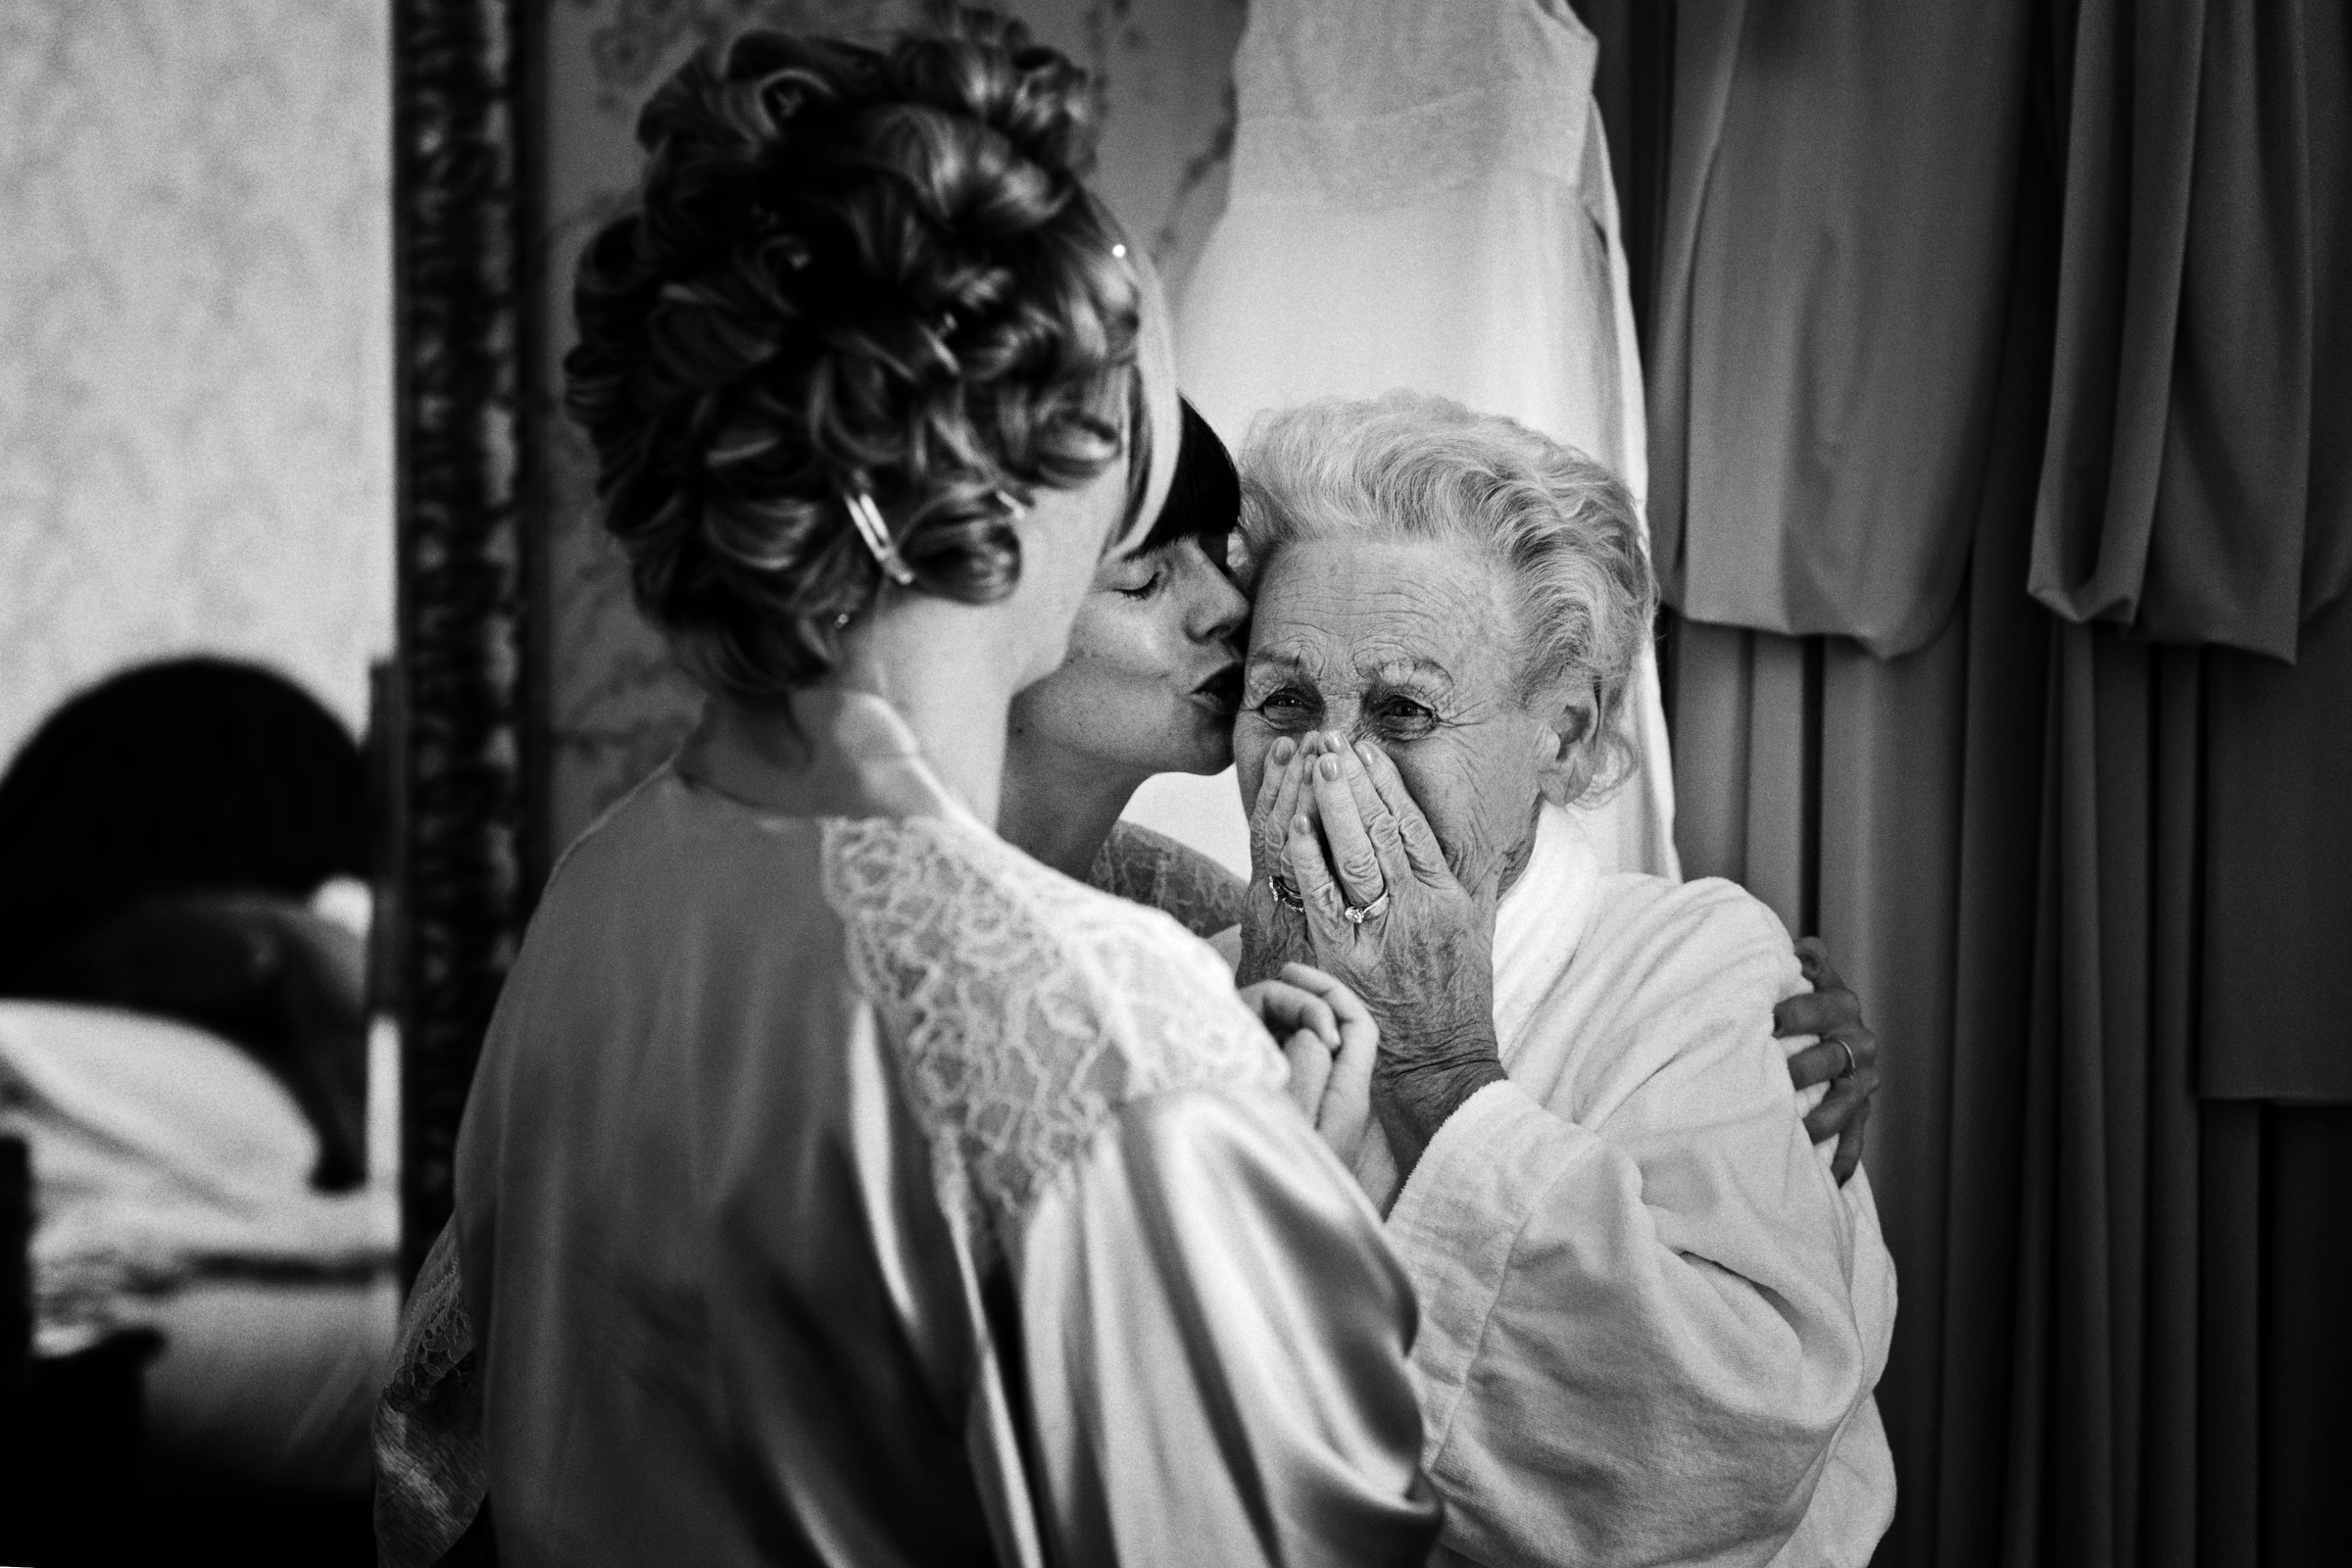 mom-reacting-to-the-bride-photo-by-jeff-ascough